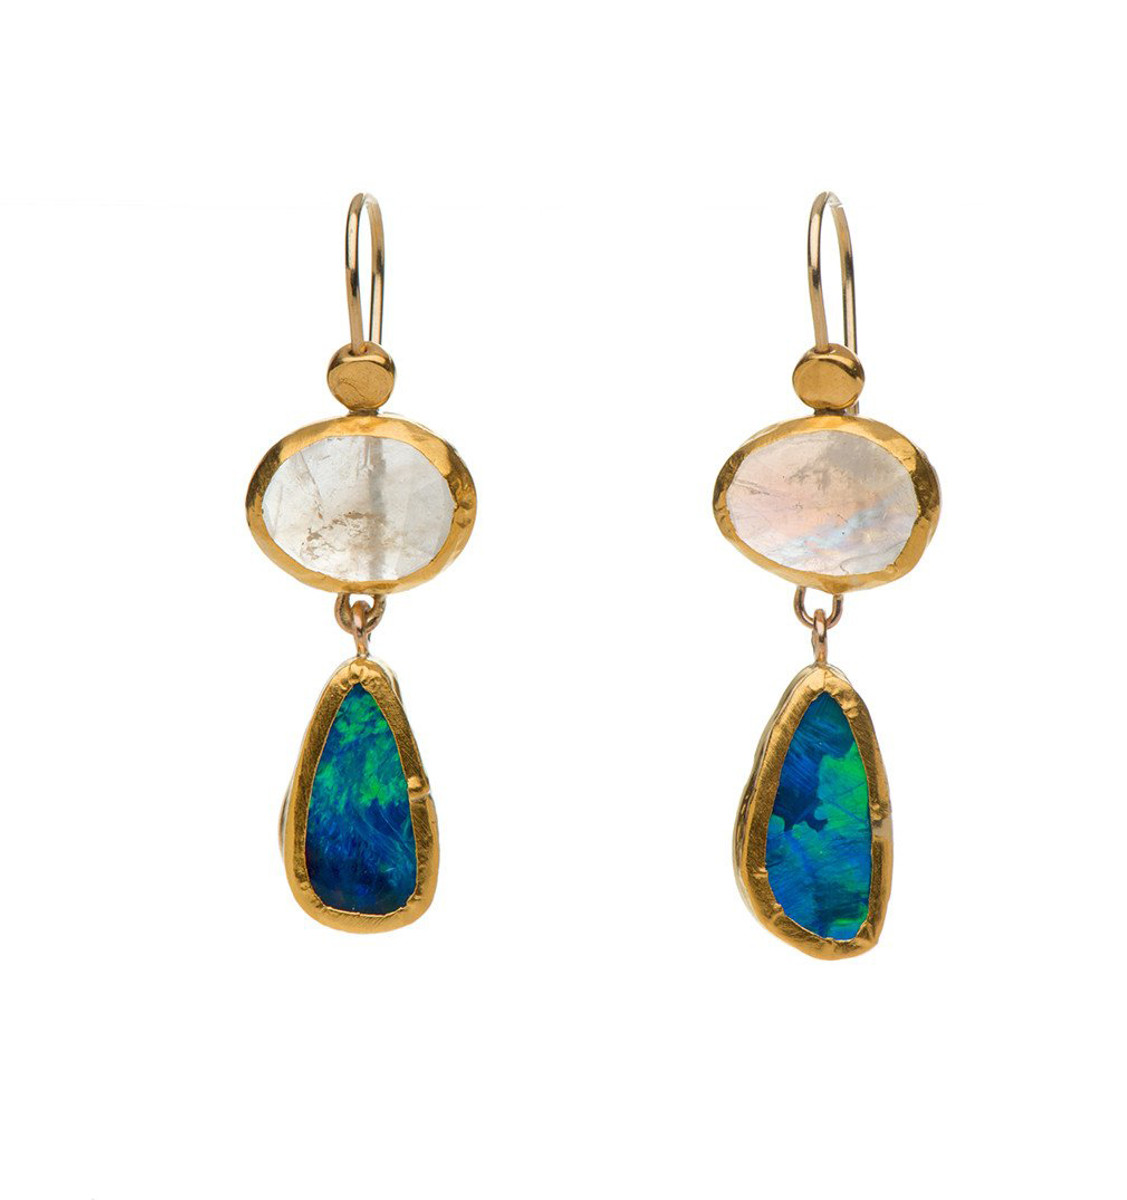 Dash of Light Earrings by Nava Zahavi - New Arrival